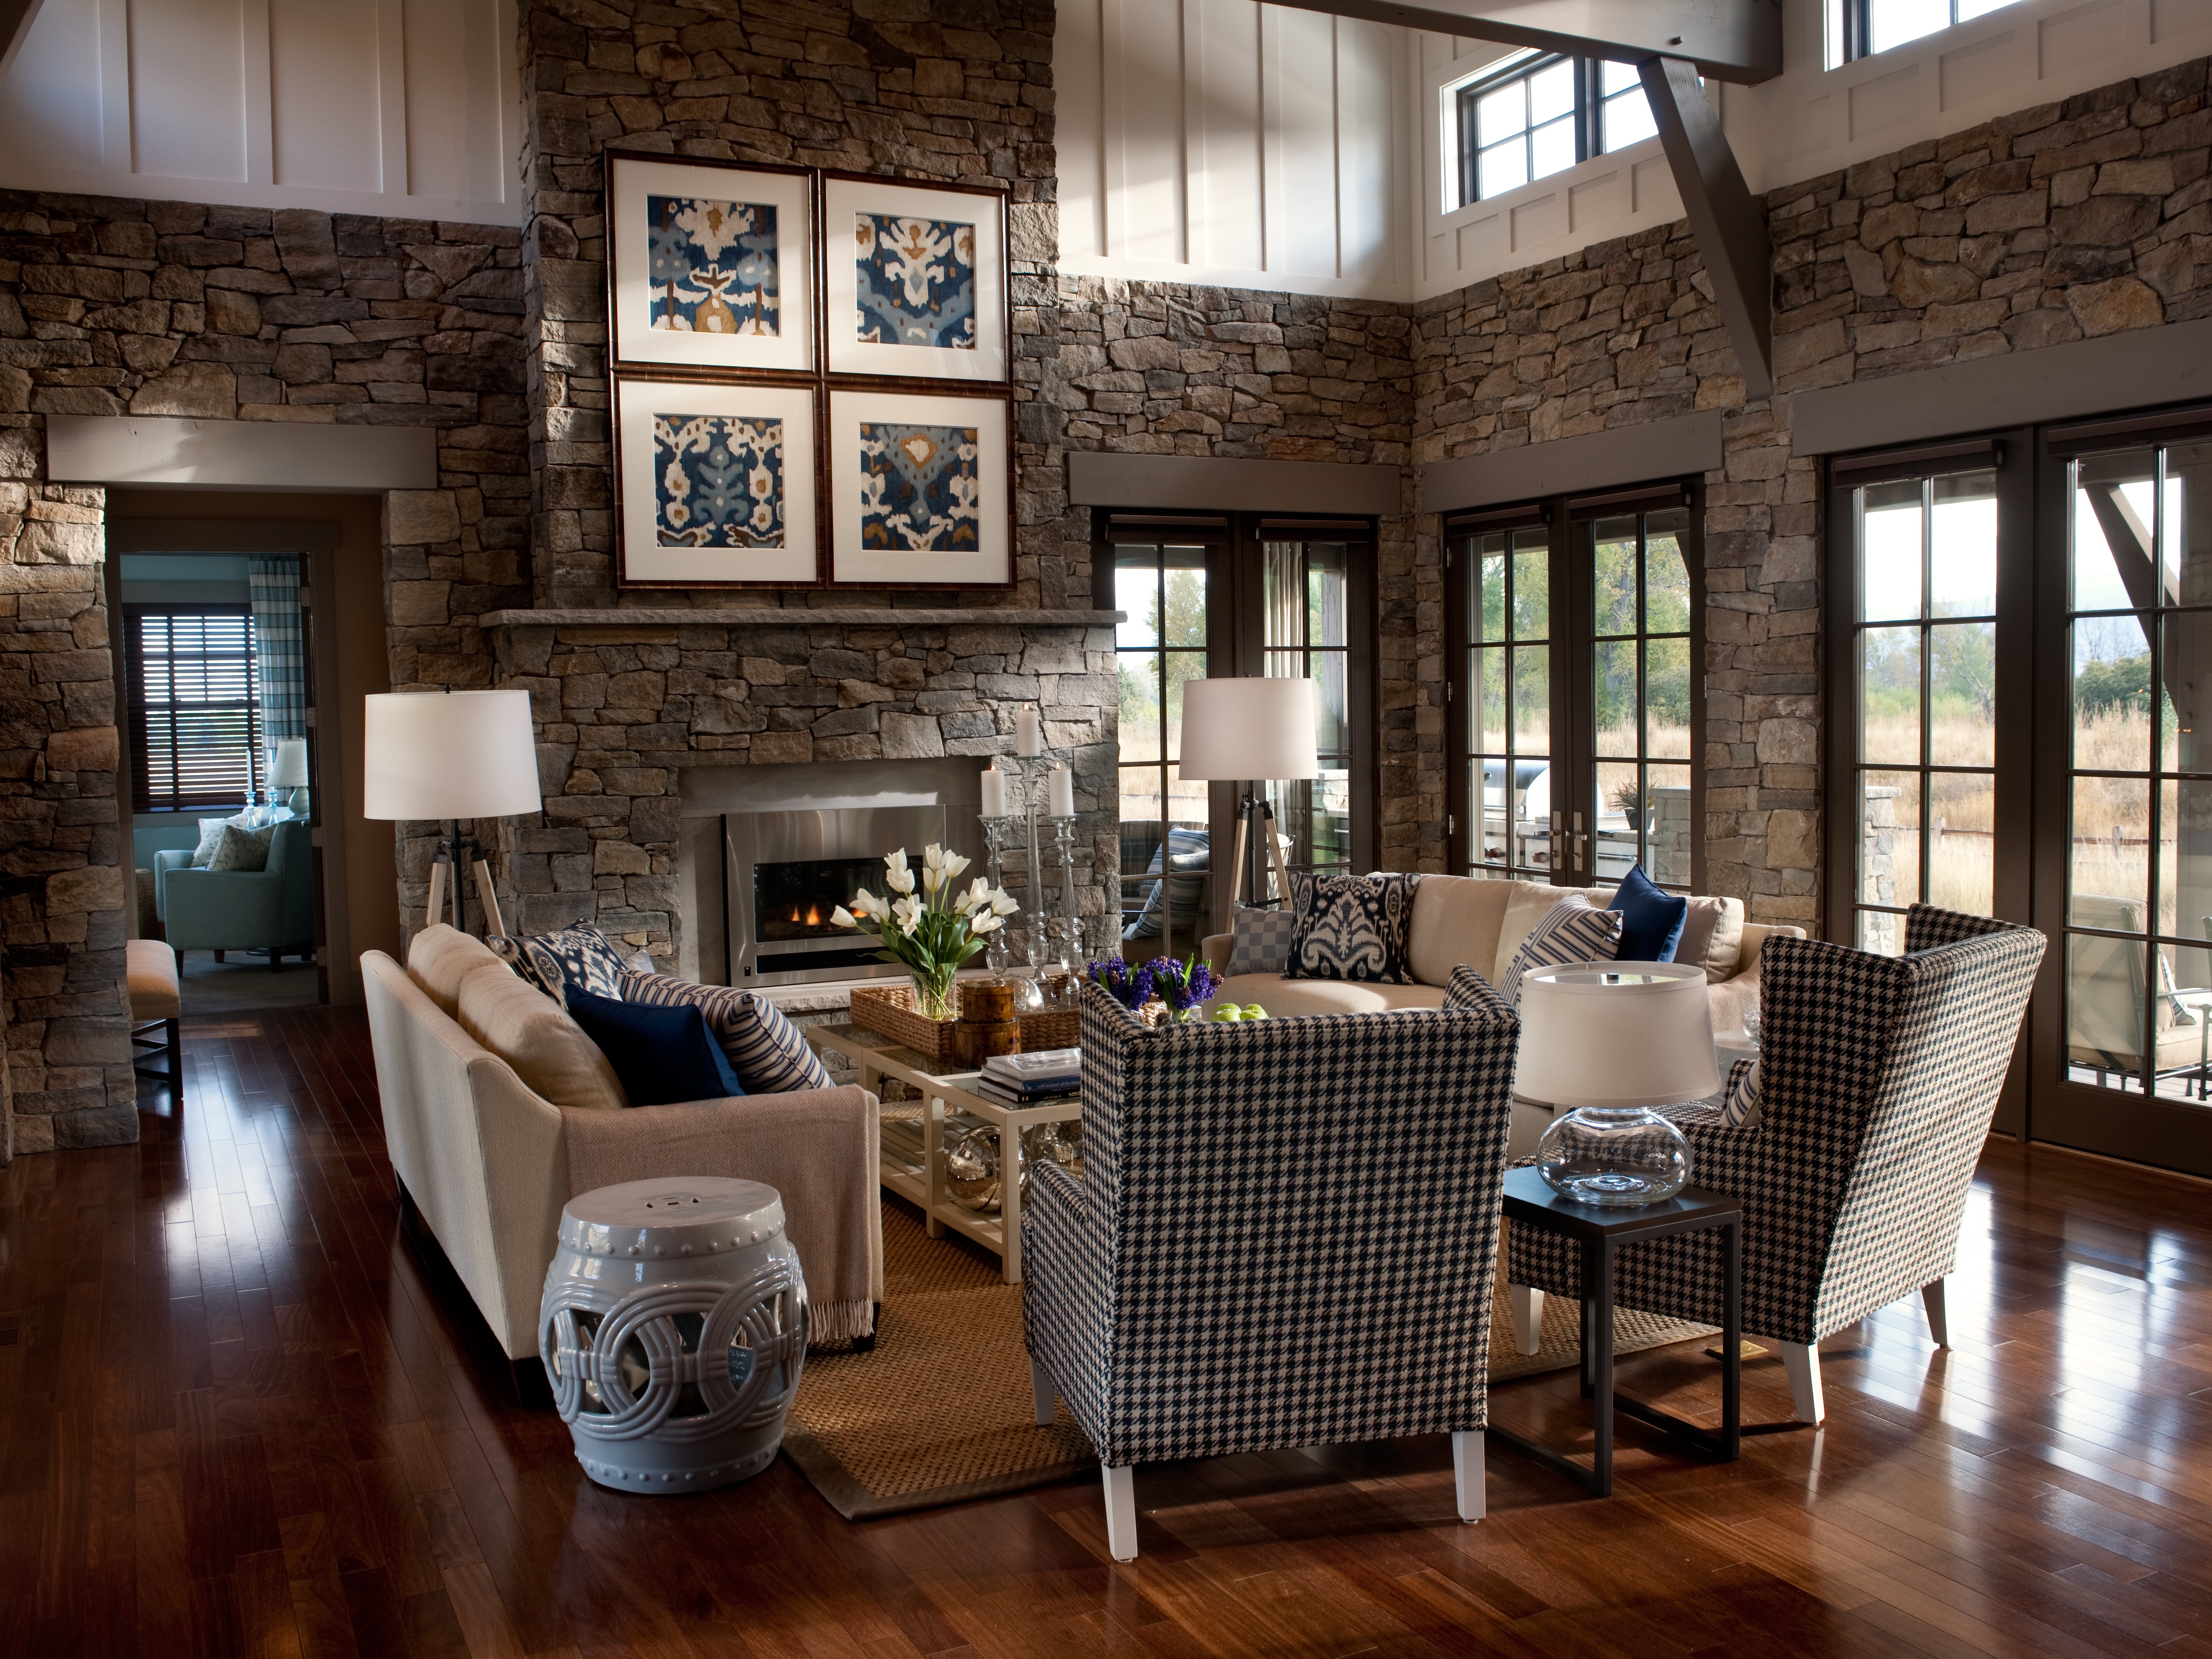 Rustic Western Living Room Interior Decor Style | Custom Home Design